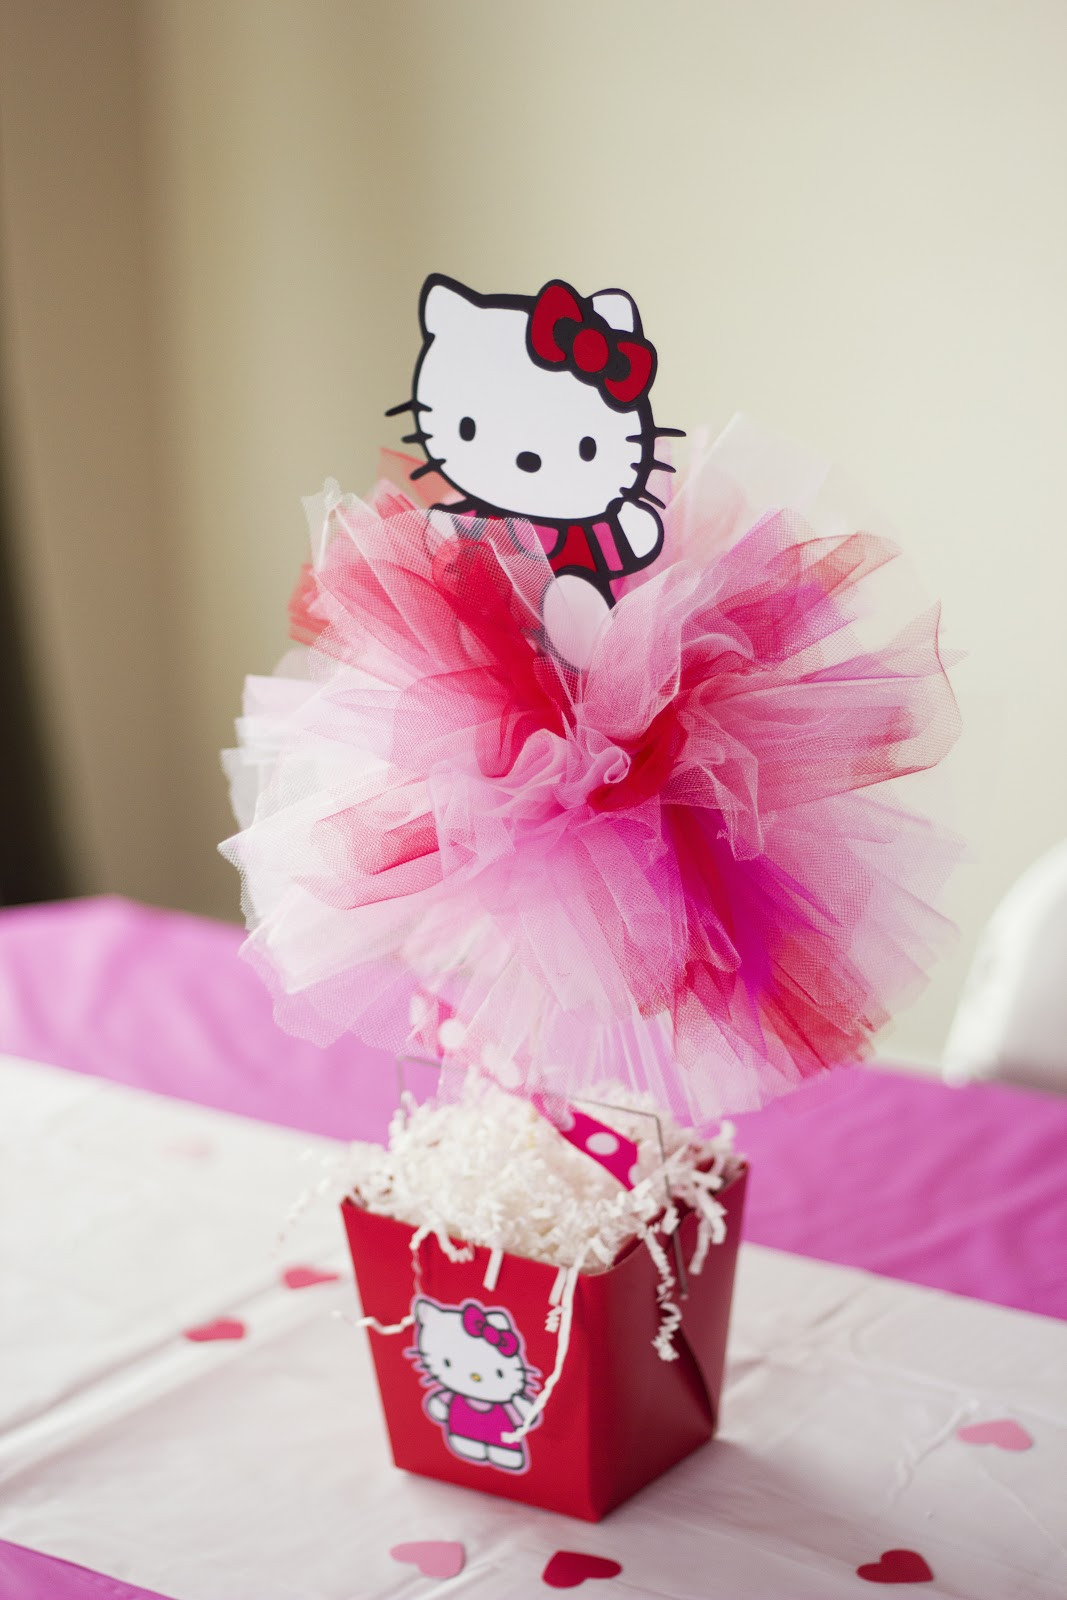 Best ideas about Hello Kitty Birthday Decorations . Save or Pin Wright By Me Hello Kitty 4th Birthday Party Now.